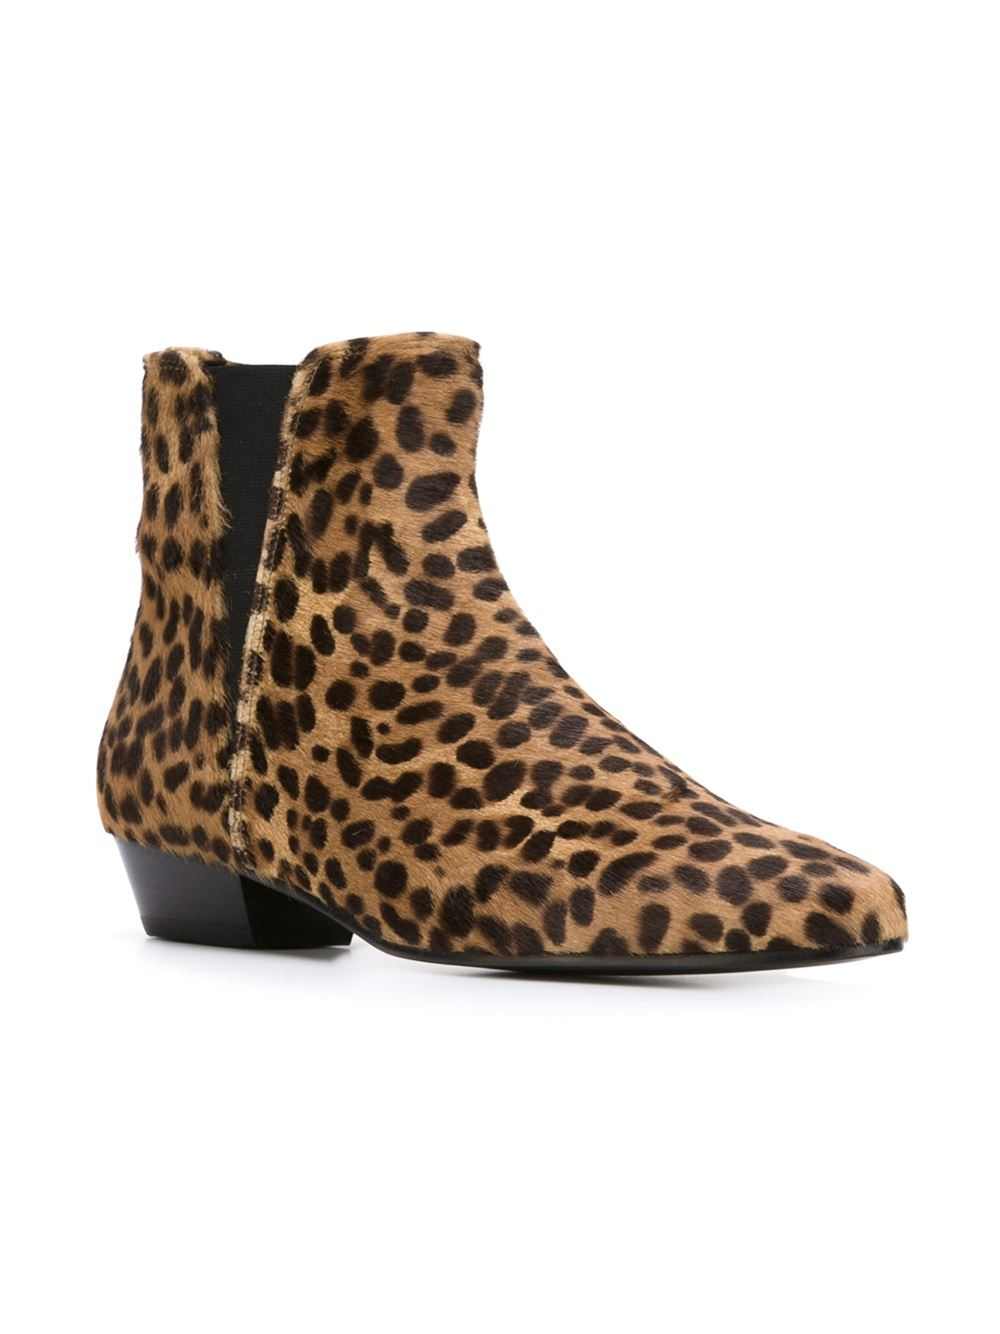 Isabel Marant Patsha Leopard-Print Calf-Leather Boots In -6882